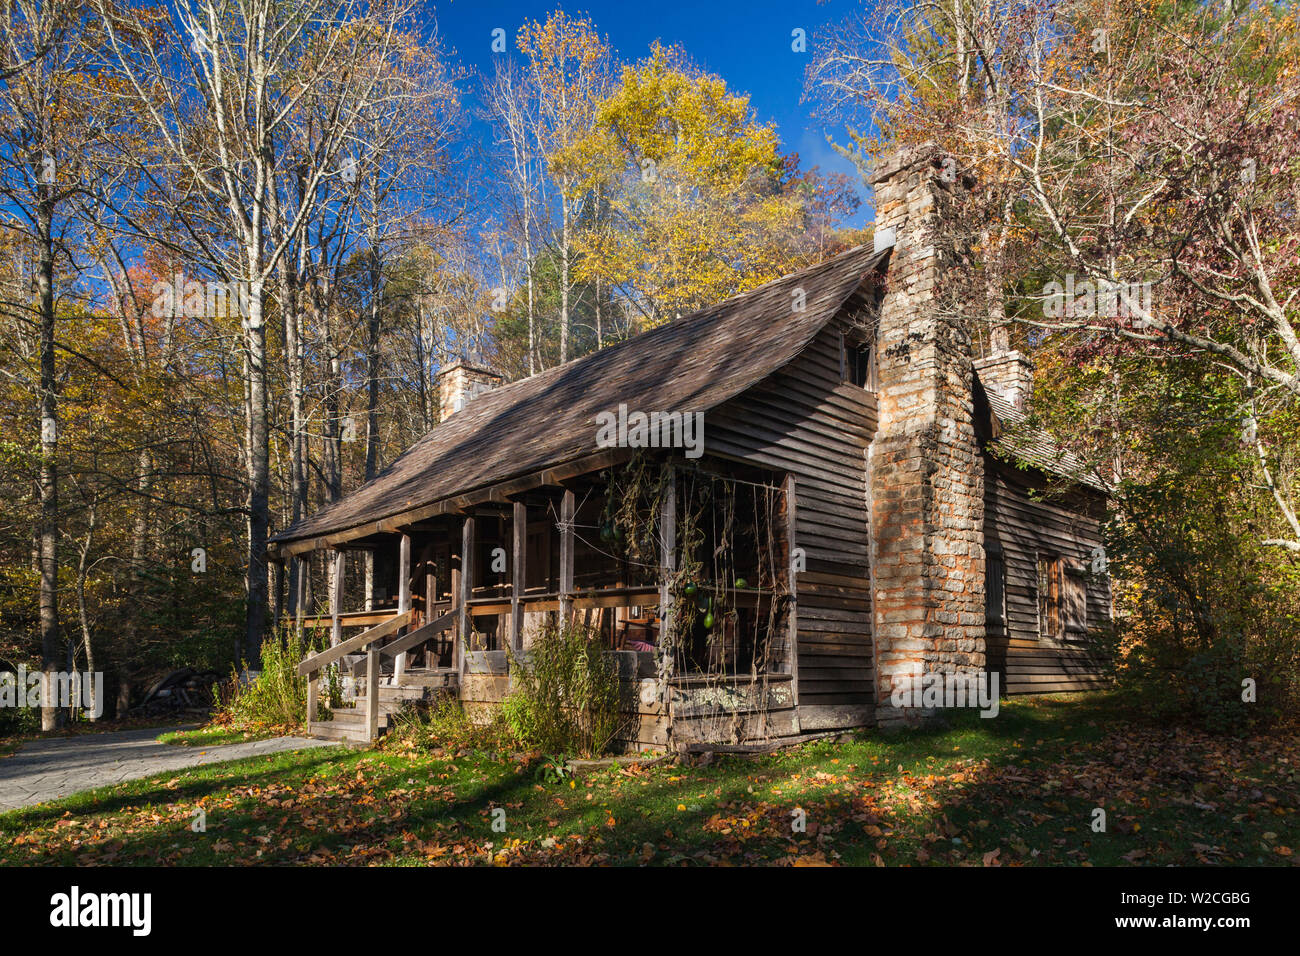 USA, North Carolina, Pisgah Forest, Cradle of Forestry National Historic Site, site of the first forestry conservation school in the US, founded by Dr. Carl Schenck in 1898 as the Biltmore Forest School, school campus building, autumn - Stock Image